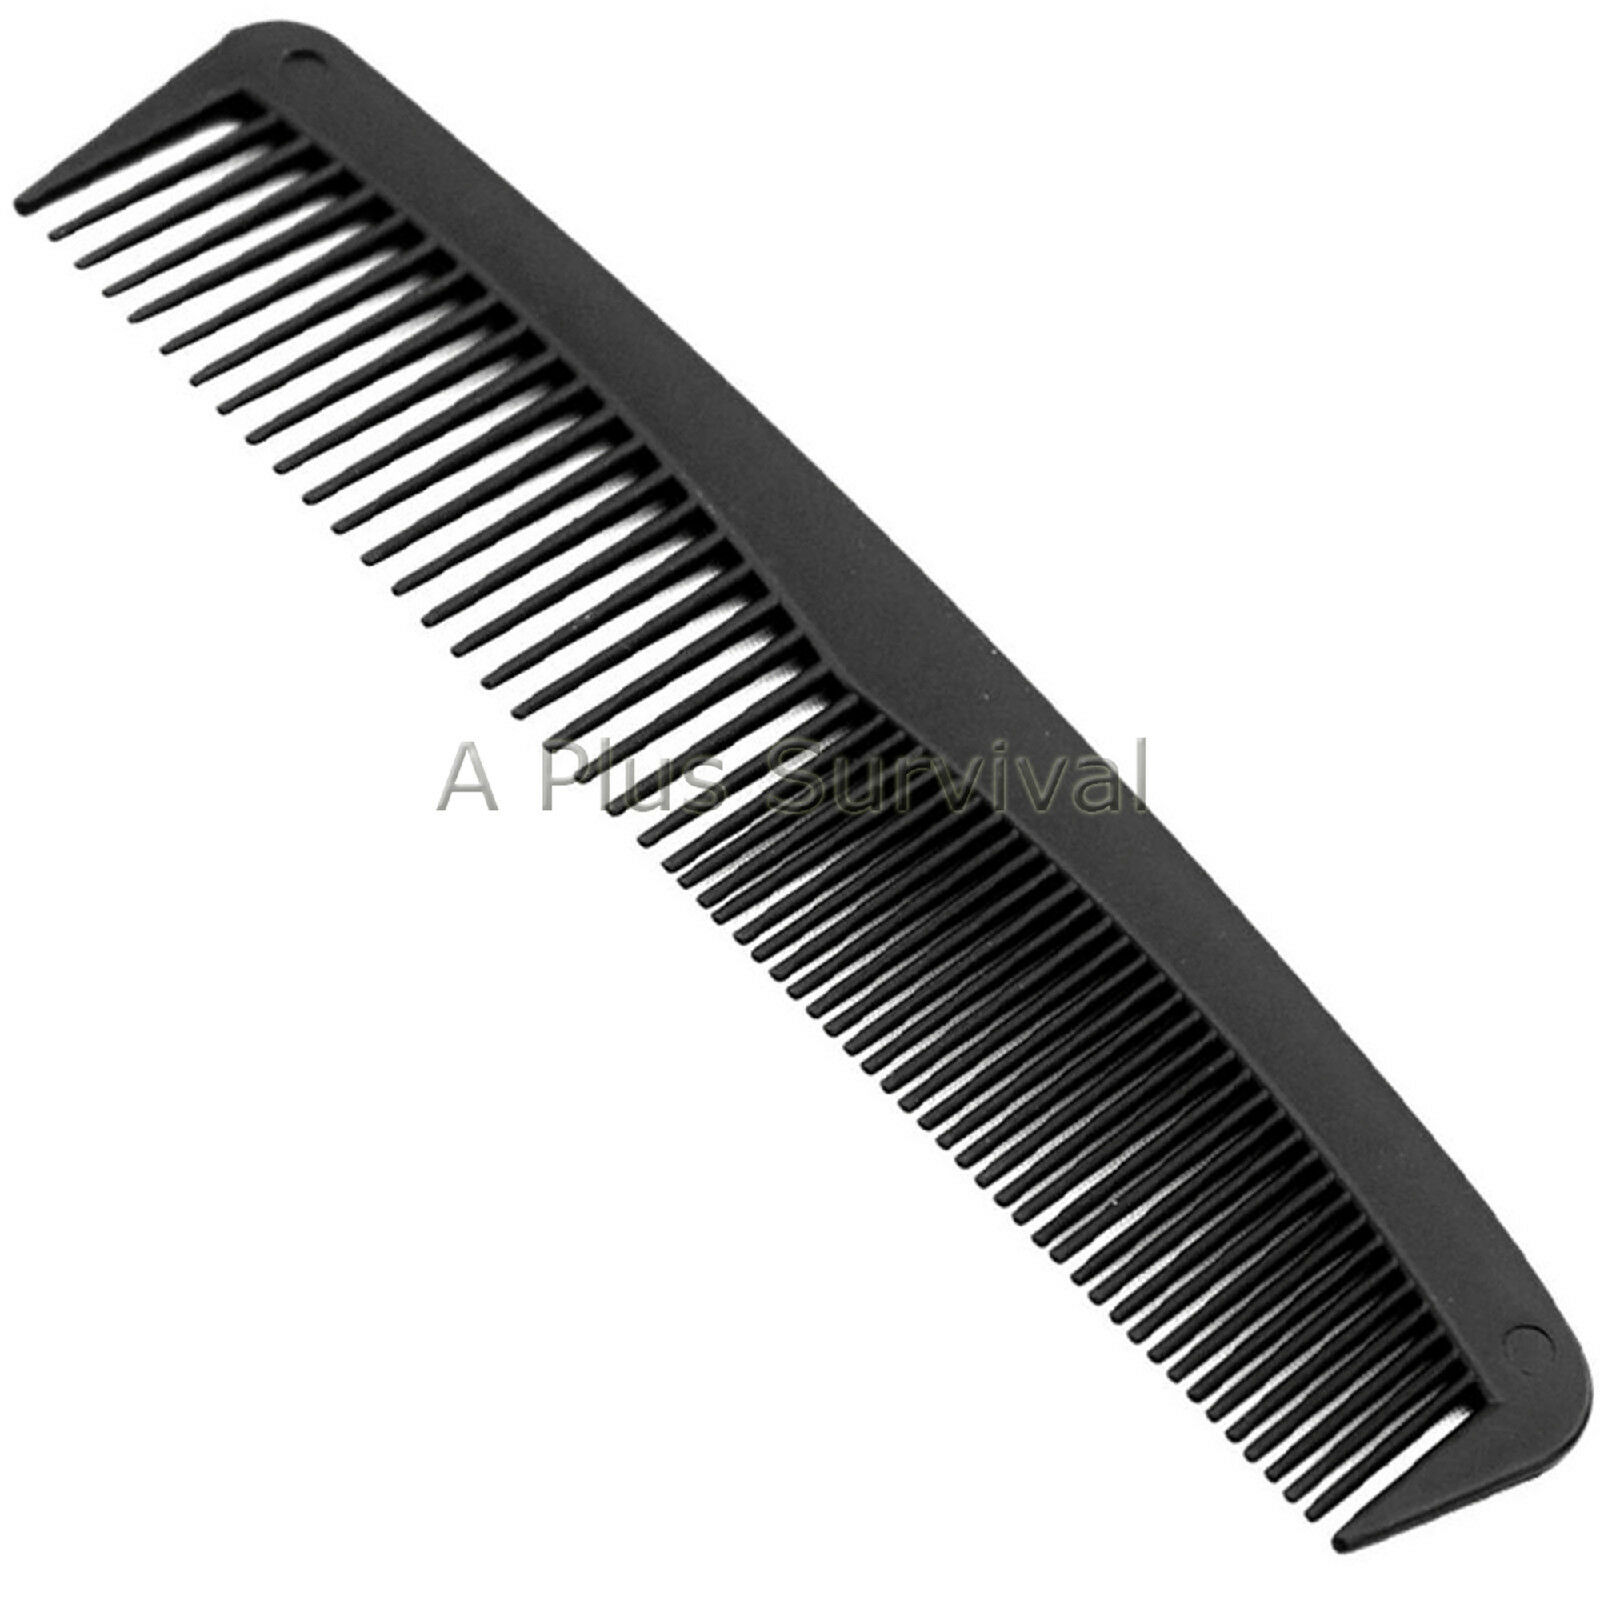 Lot of 1440 - 7  Plastic Hair Combs - Survival Hygiene Church Mission Shelters